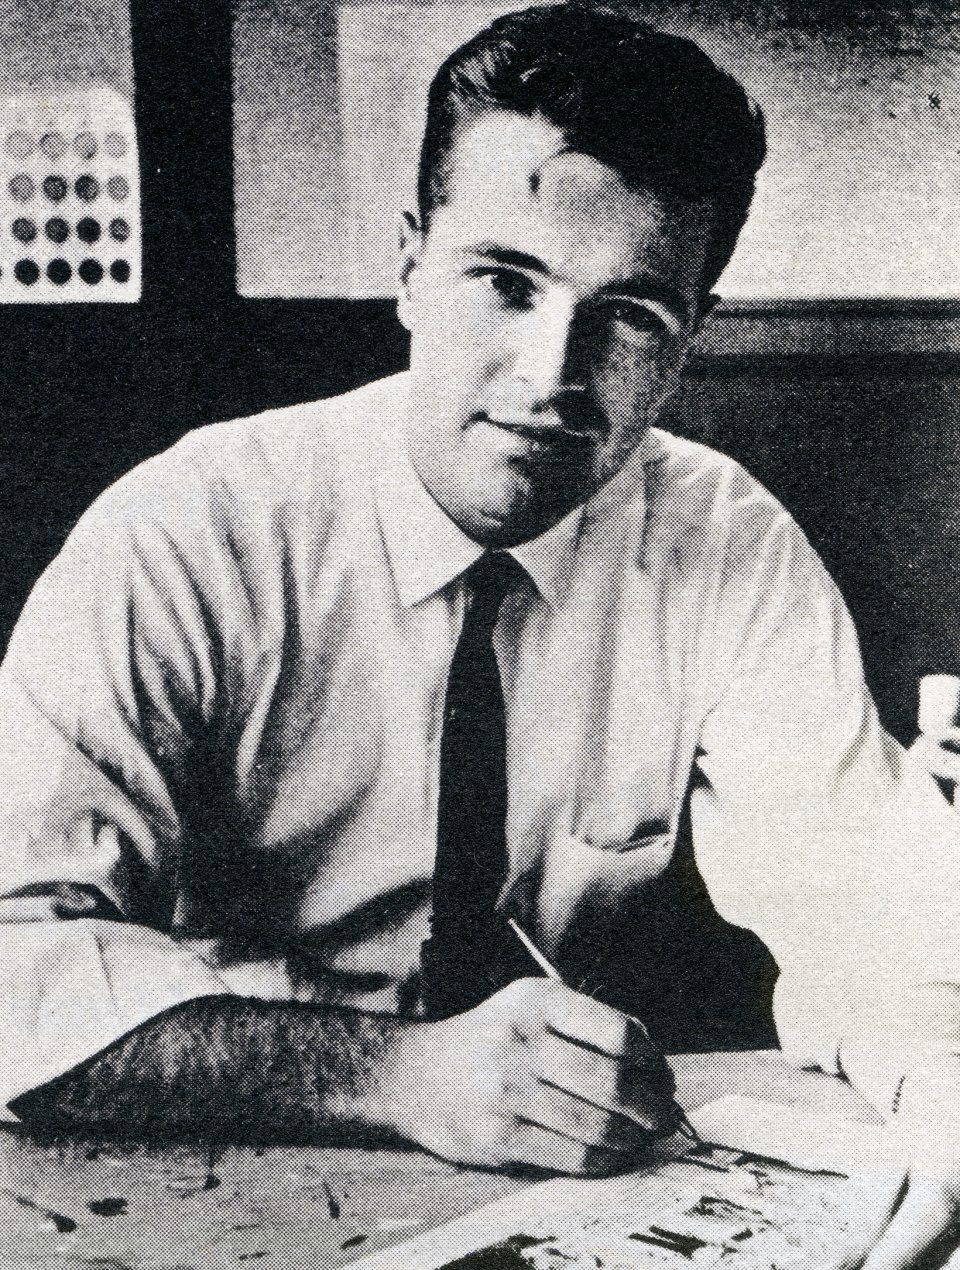 Neal Adams at work at DC Comics in the 1960's. (Courtesy Photo via Taschen)